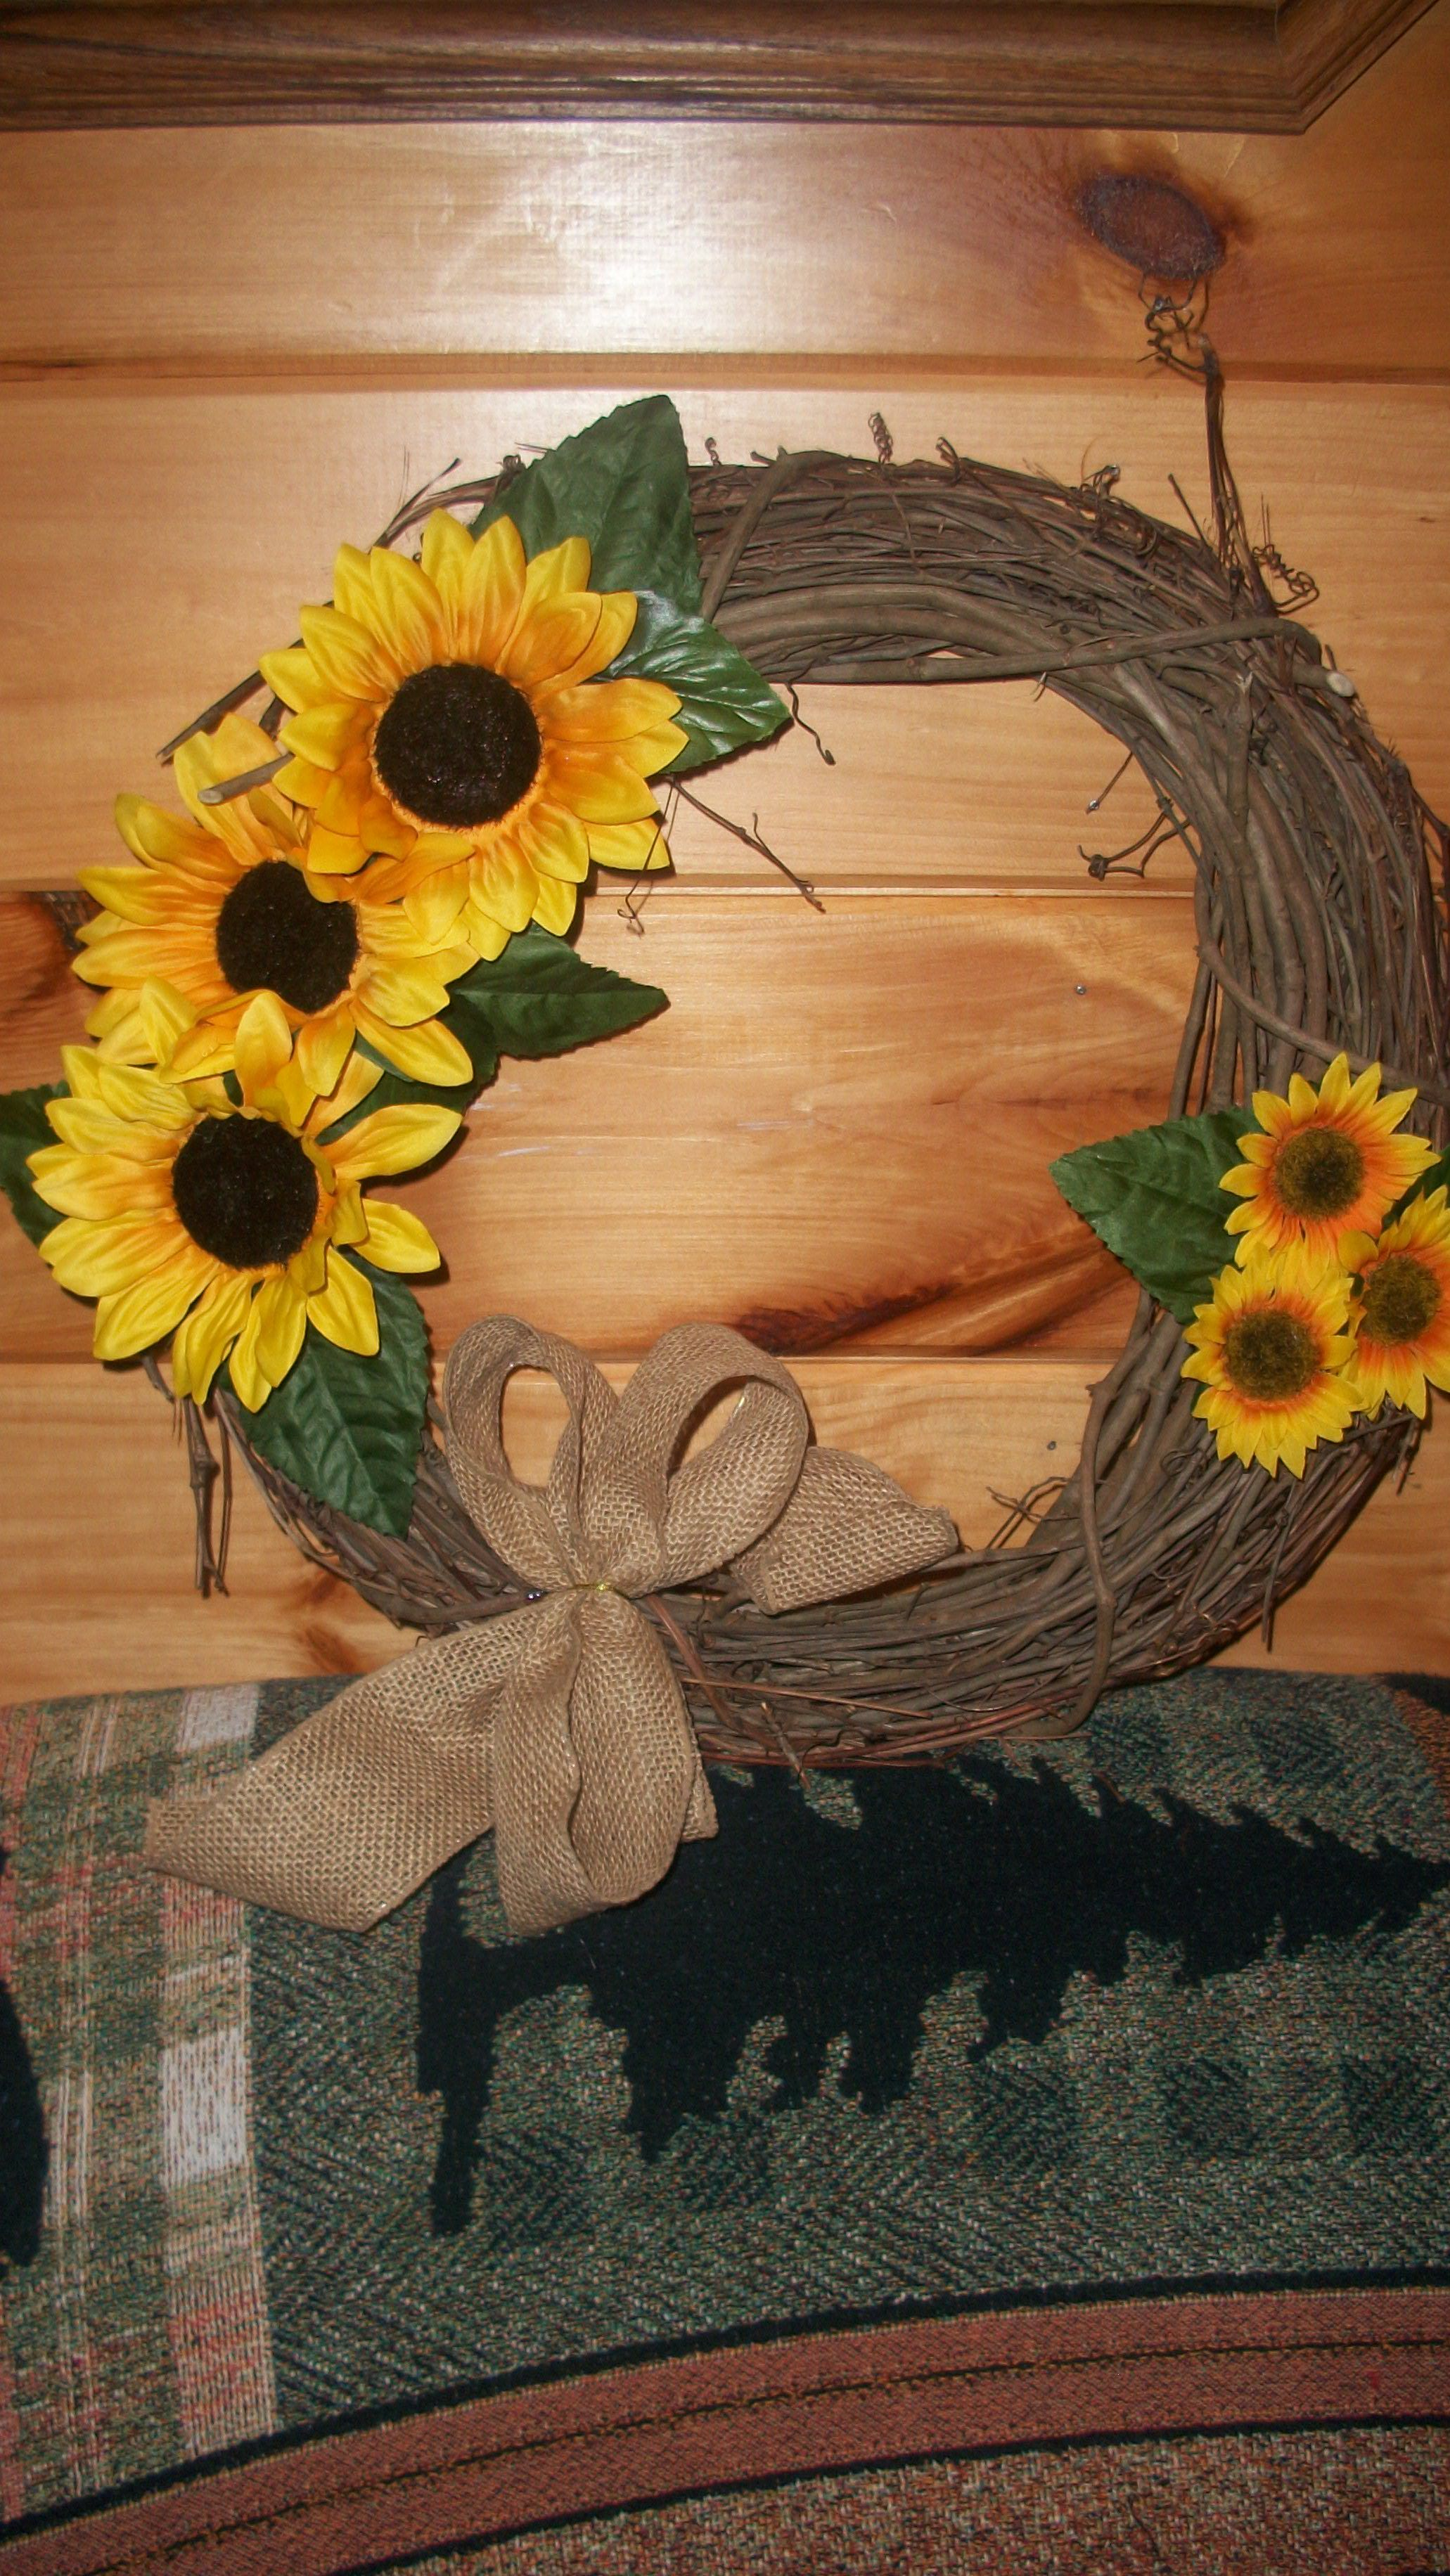 wreaths made to order in TerriandSteves Garage Sale in Ballston Spa , NY for $45.00.  hand made rag wreaths, ribbom wreaths and grapevine wreaths,   call for samples and pricing